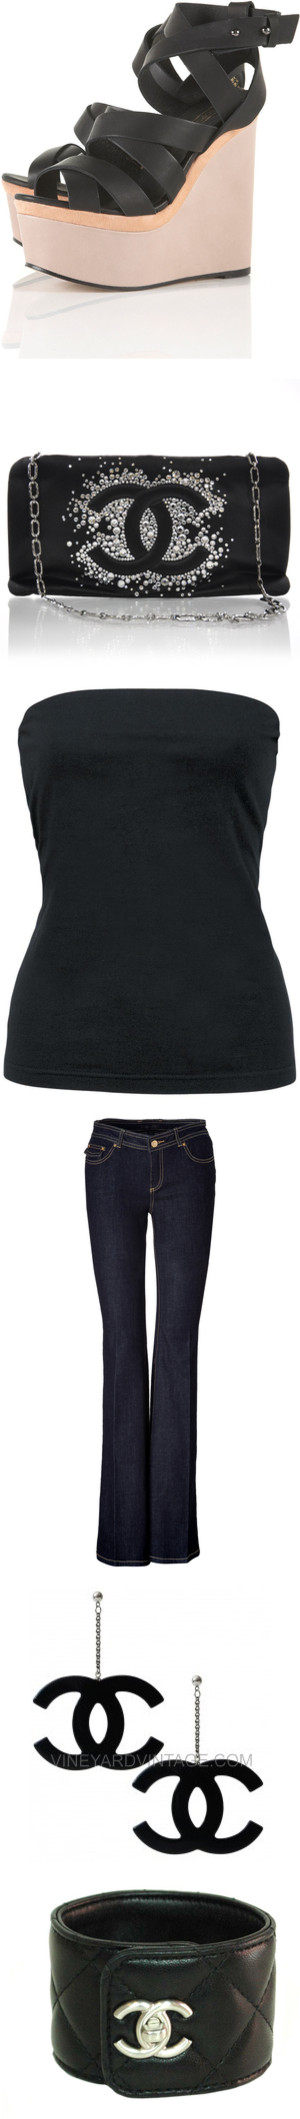 """Nazzo"" by felicia-townes on Polyvore"